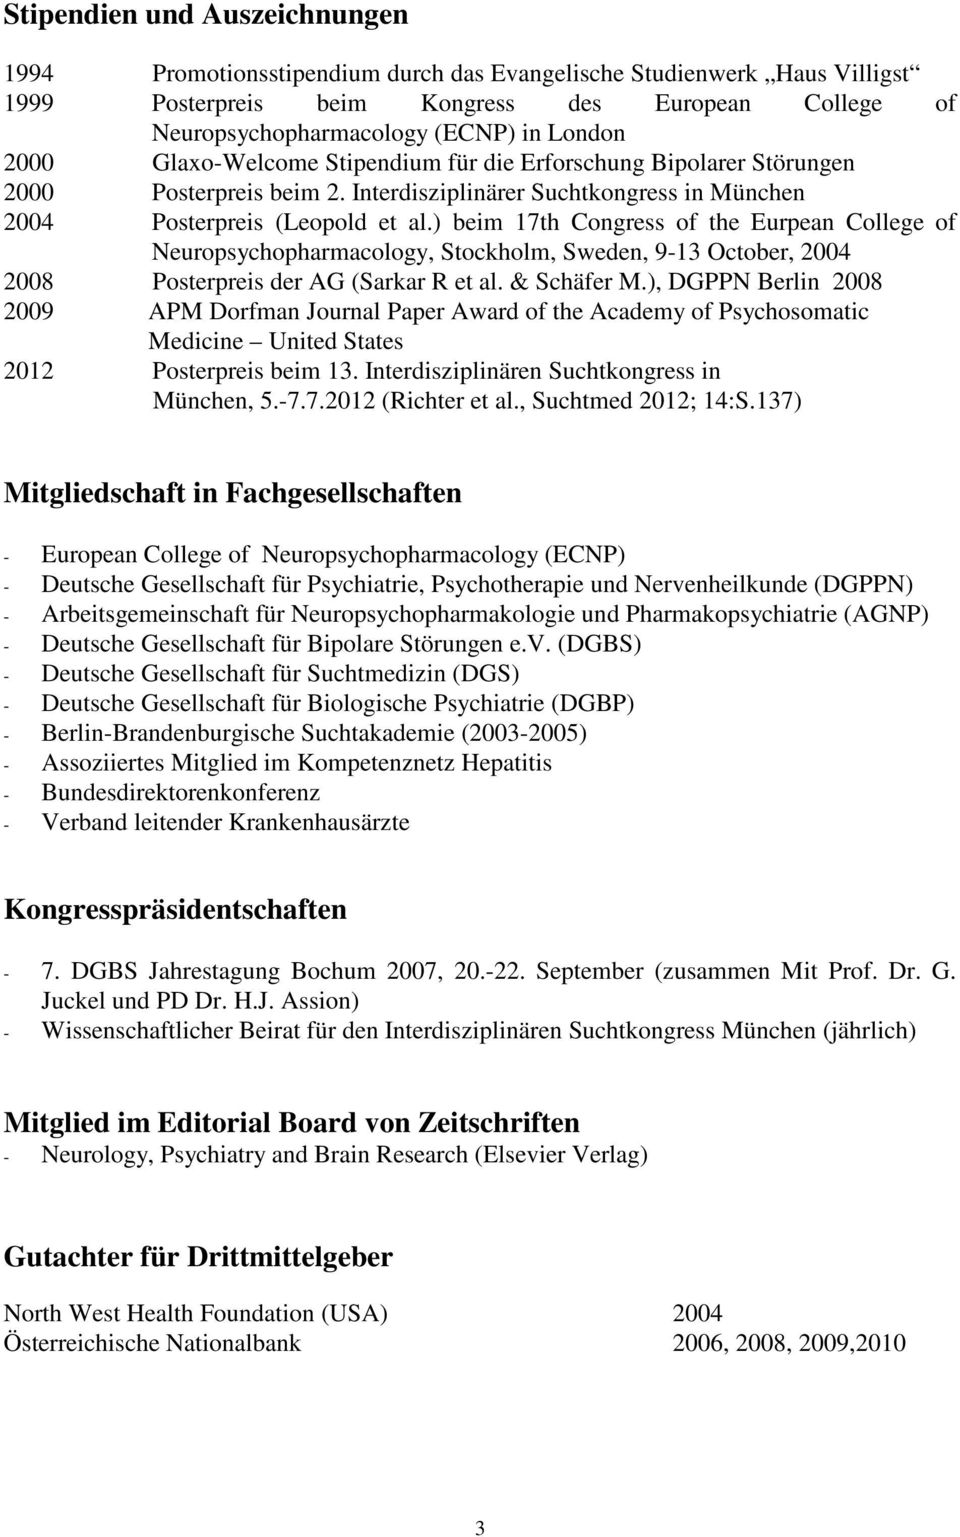 ) beim 17th Congress of the Eurpean College of Neuropsychopharmacology, Stockholm, Sweden, 9-13 October, 2004 2008 Posterpreis der AG (Sarkar R et al. & Schäfer M.